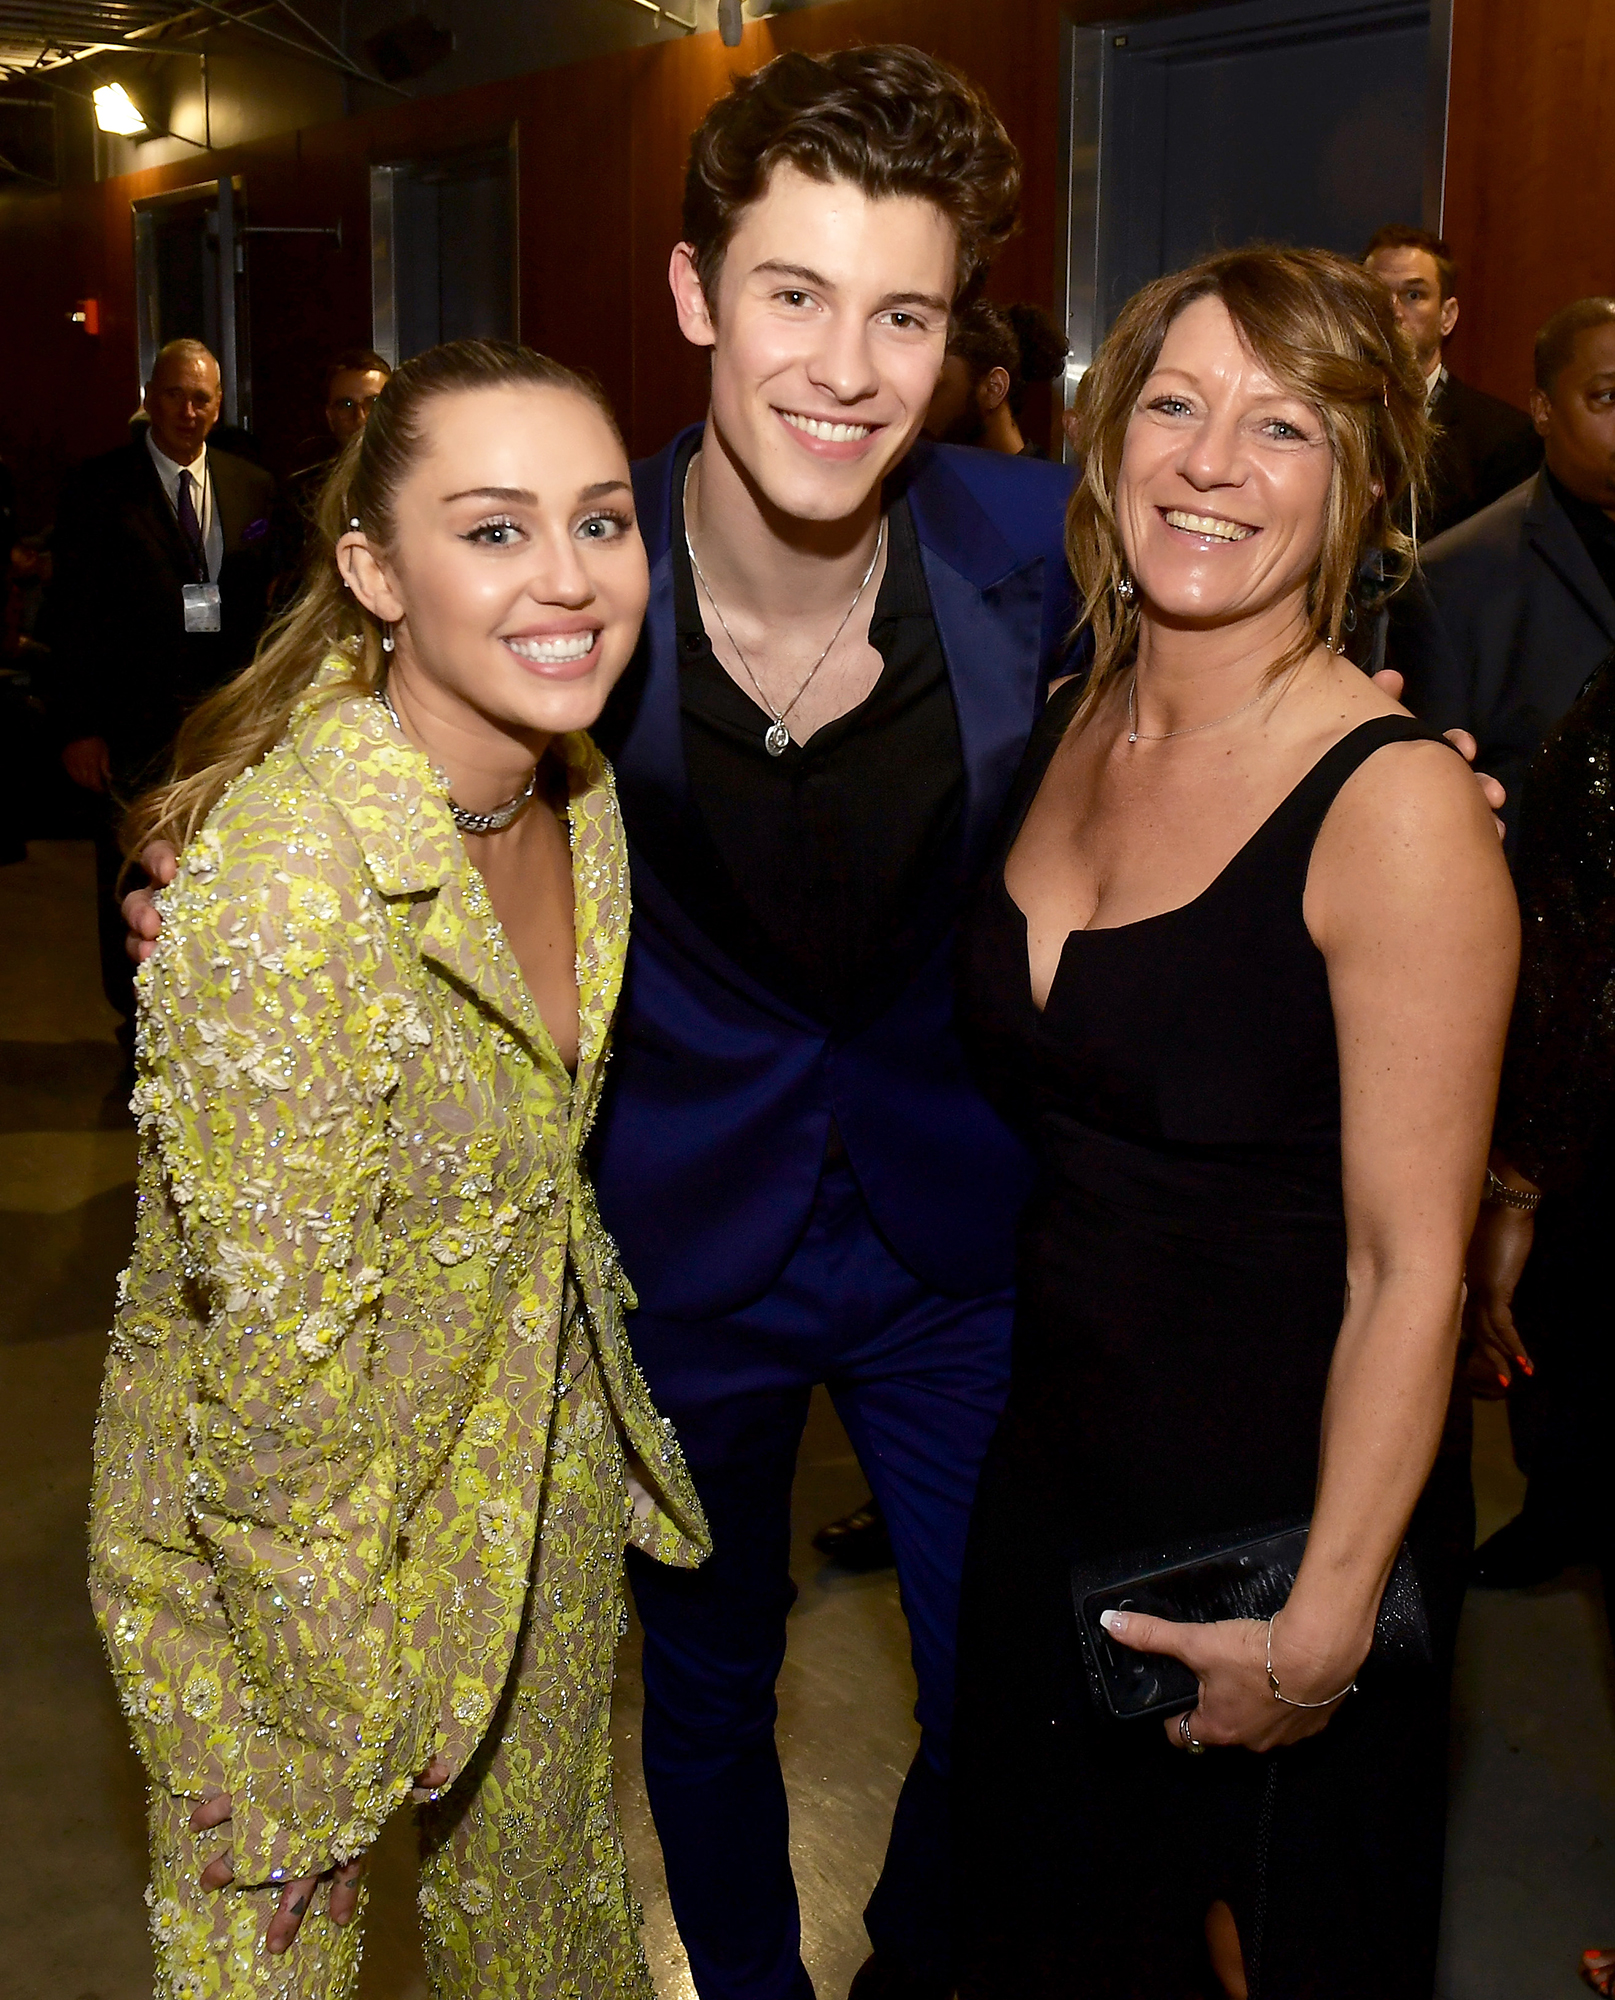 Shawn Mendes Karen Mendes miley cyrus STARS BRINGING FAMILY TO GRAMMYS 2019 - A family affair! Not only did the musician bring his dad to the Grammys, but Mendes and Miley Cyrus posed for a pic with his mom as well.